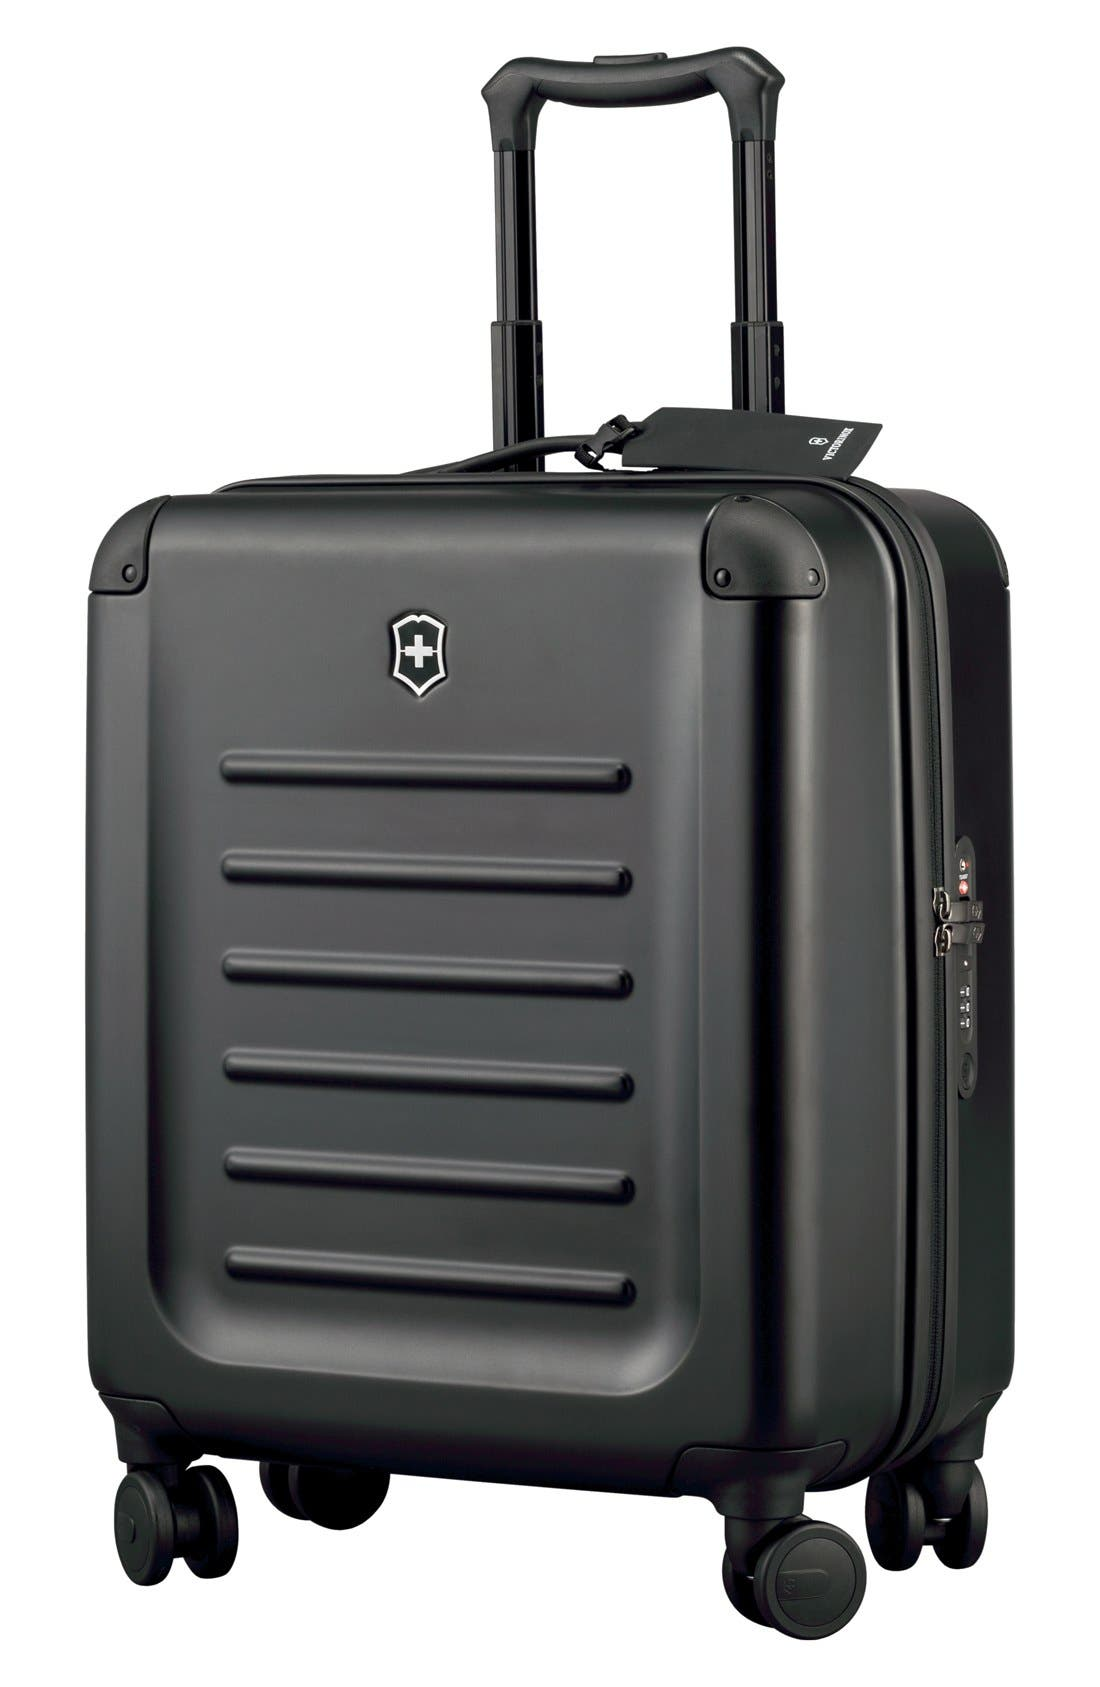 VICTORINOX SWISS ARMY<SUP>®</SUP> Spectra 2.0 Extra Capacity Hard Sided Rolling Carry-On